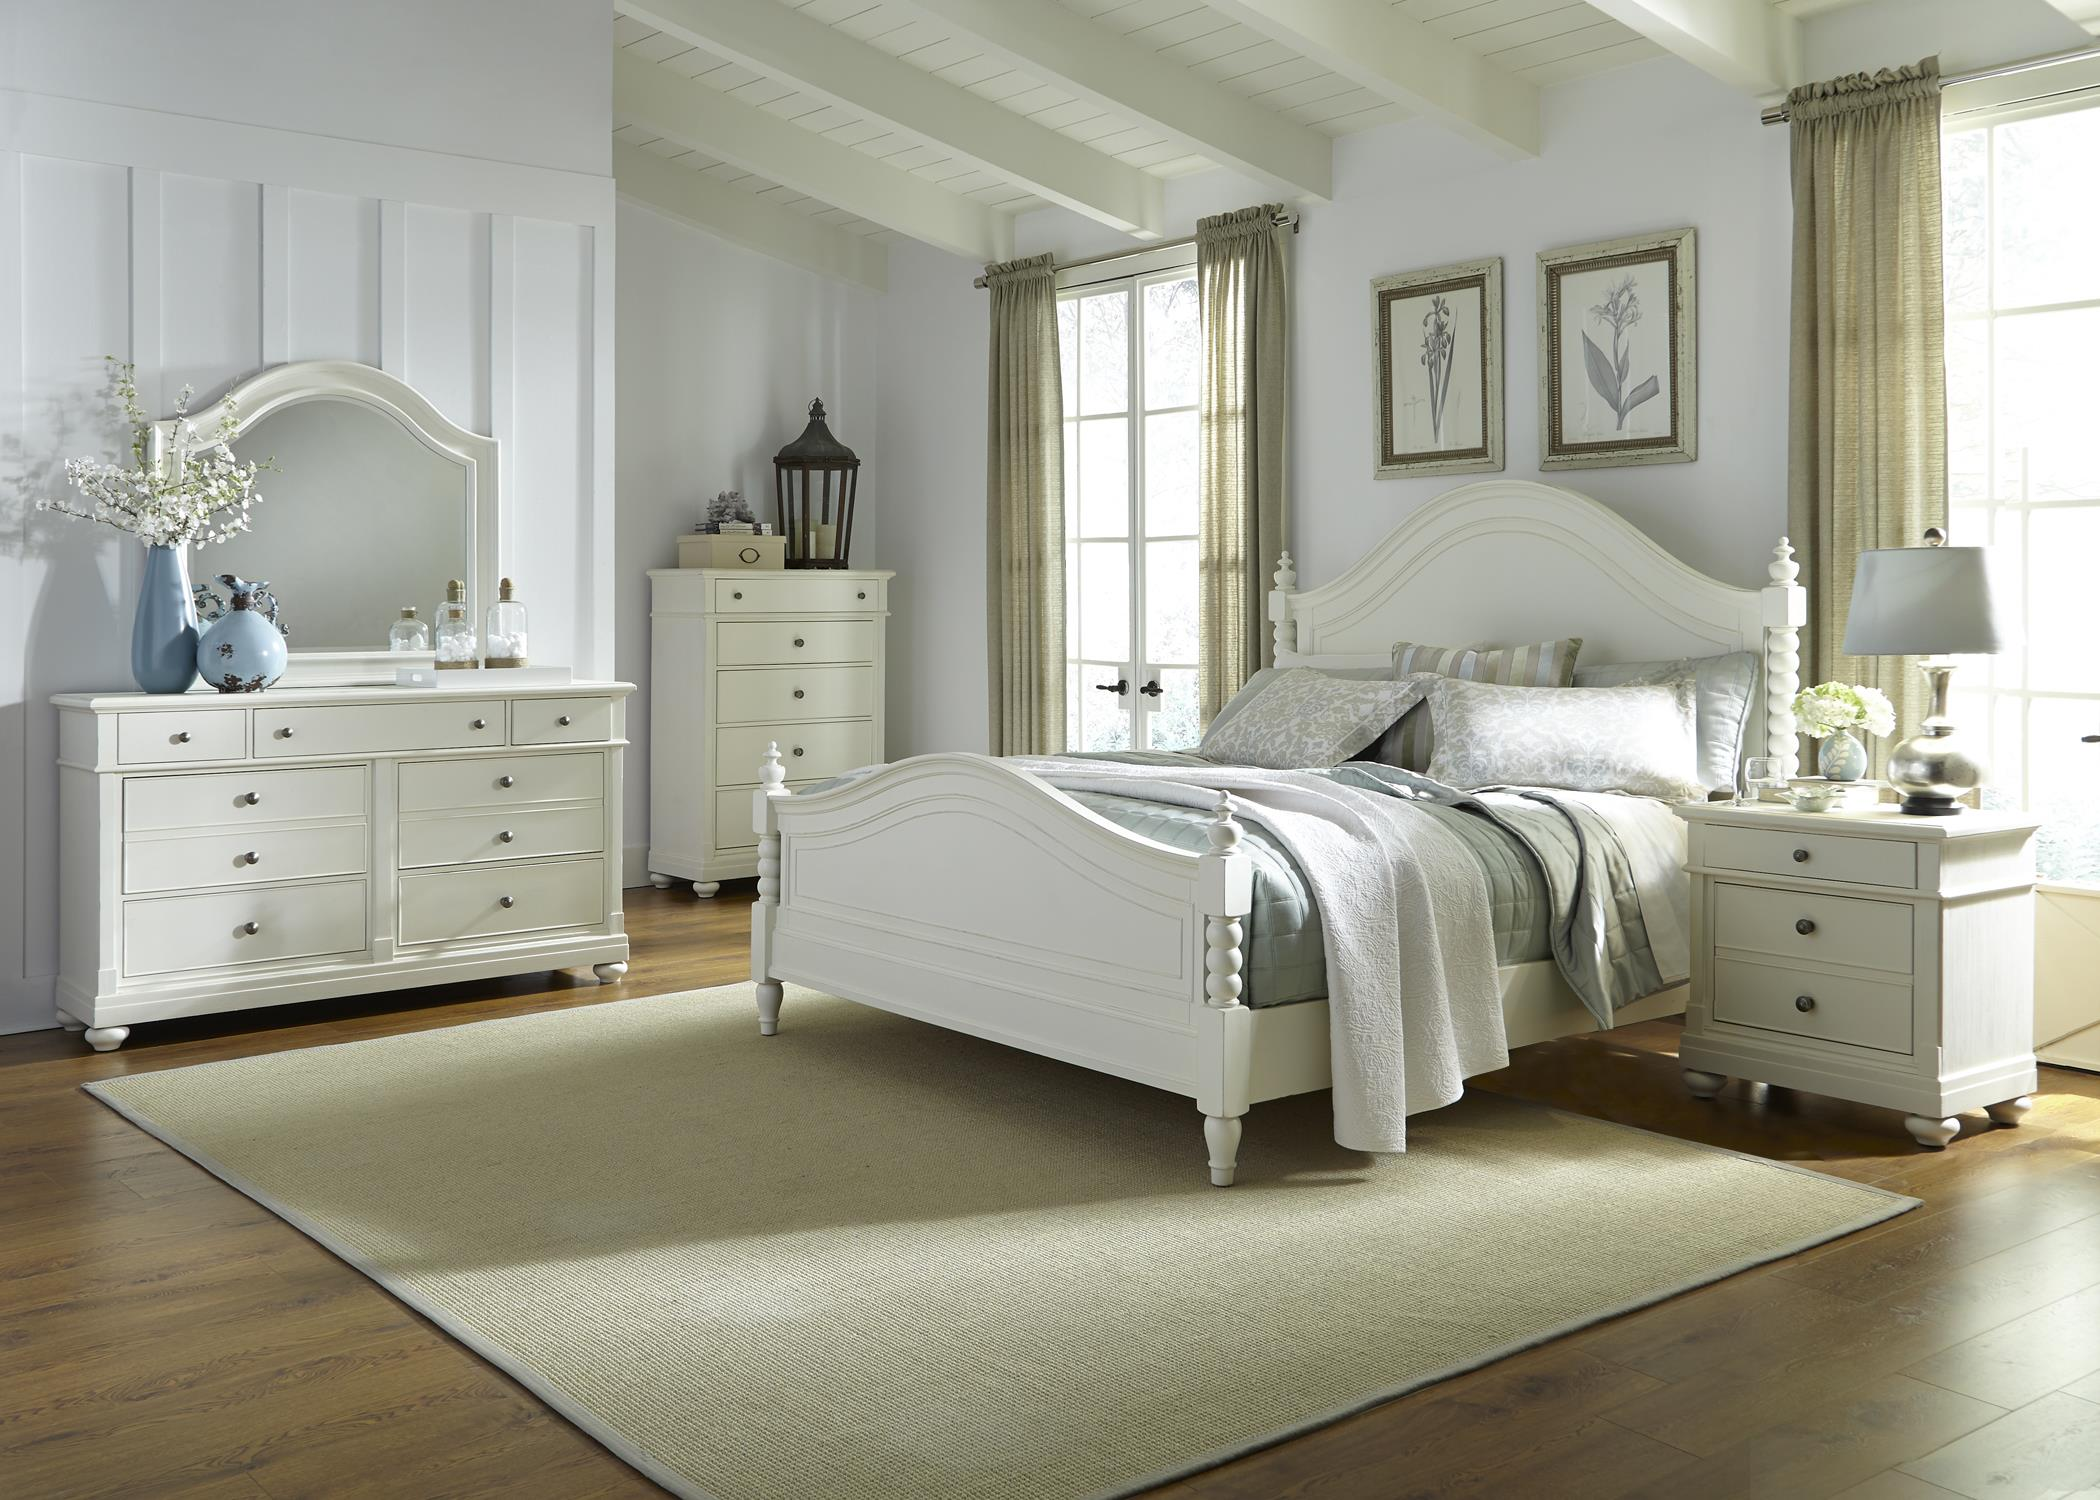 Liberty Furniture Harbor View King Bedroom Group - Item Number: 631-BR-KPSDMCN